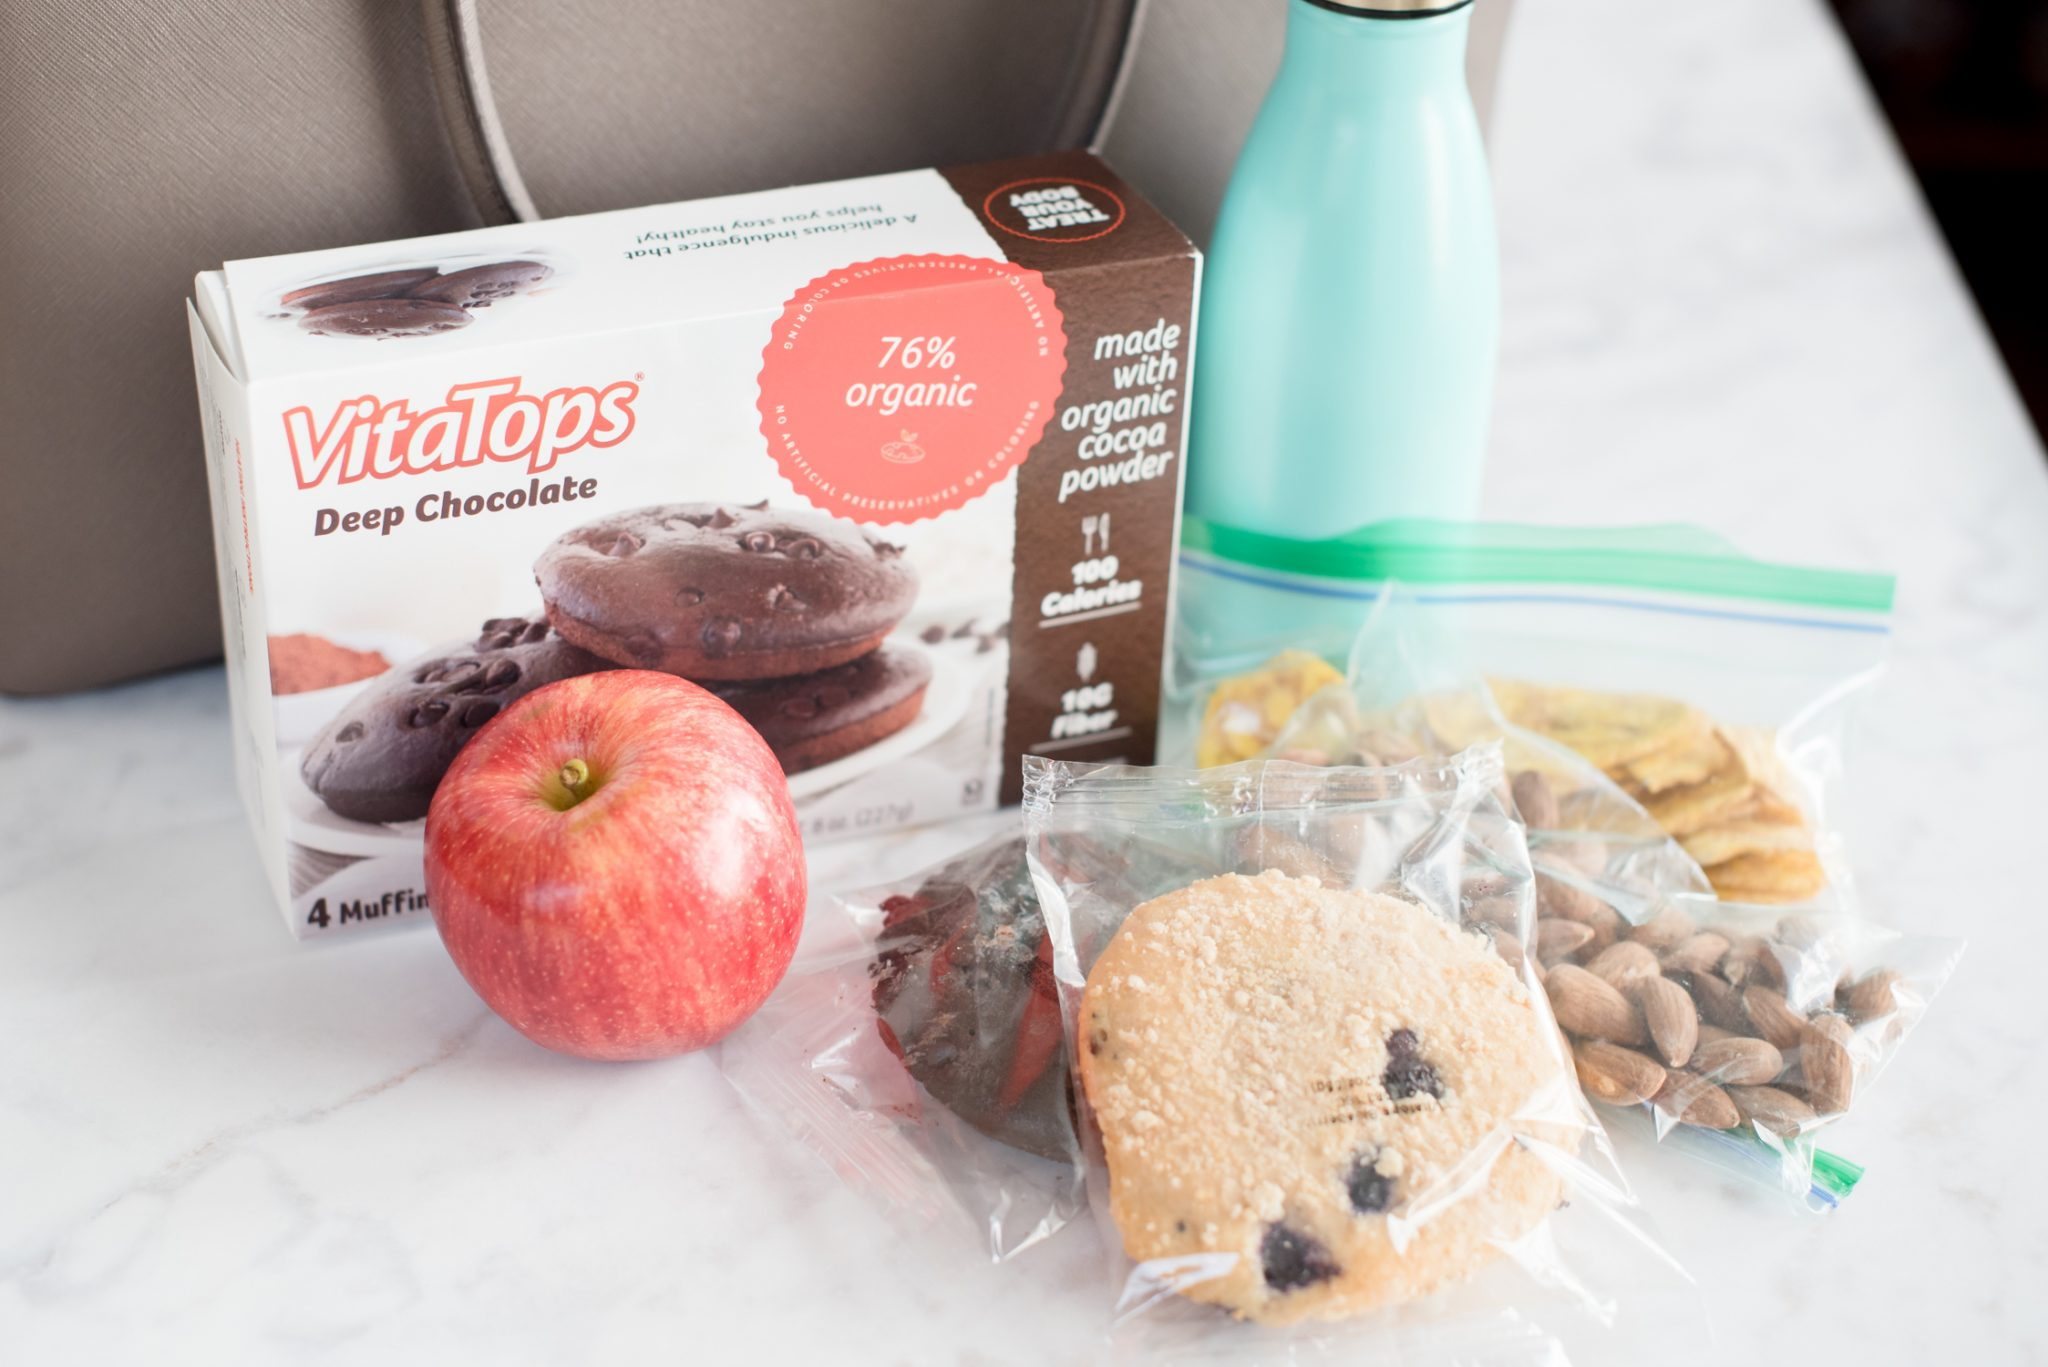 Healthy Snacks, Snacking Healthy All Day with VitaTops MuffinTops via @missmollymoon